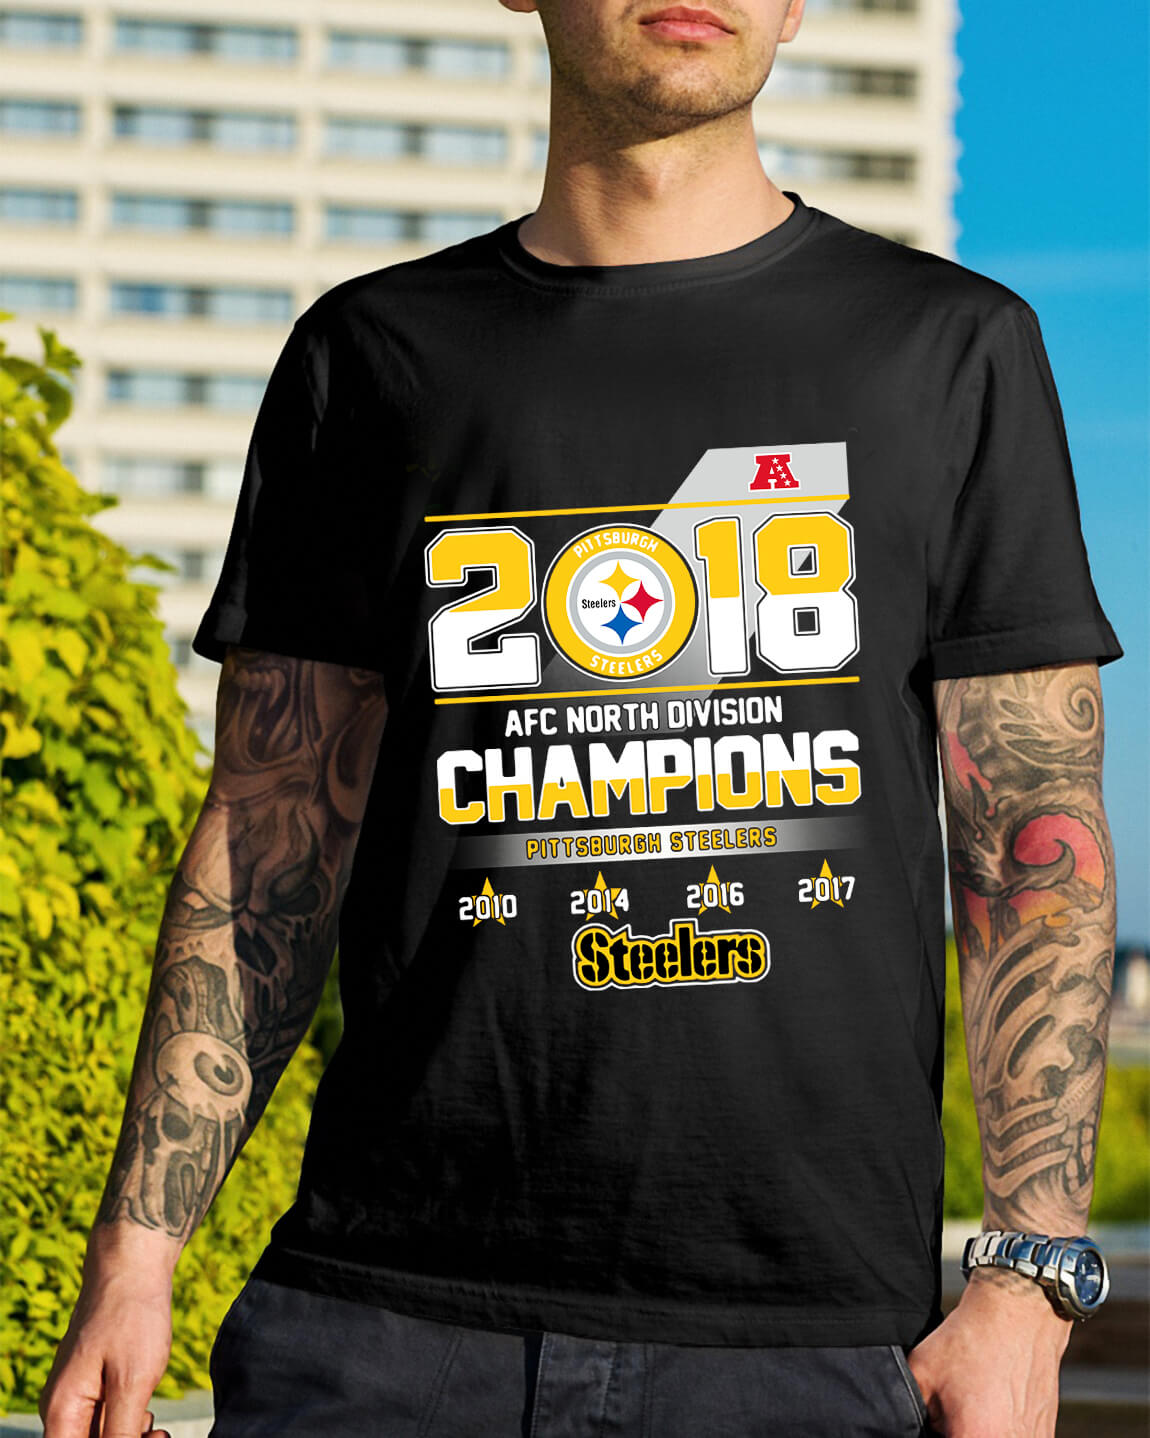 brand new 9c256 1c0ac AFC North Division Champions Pittsburgh Steelers shirt ...